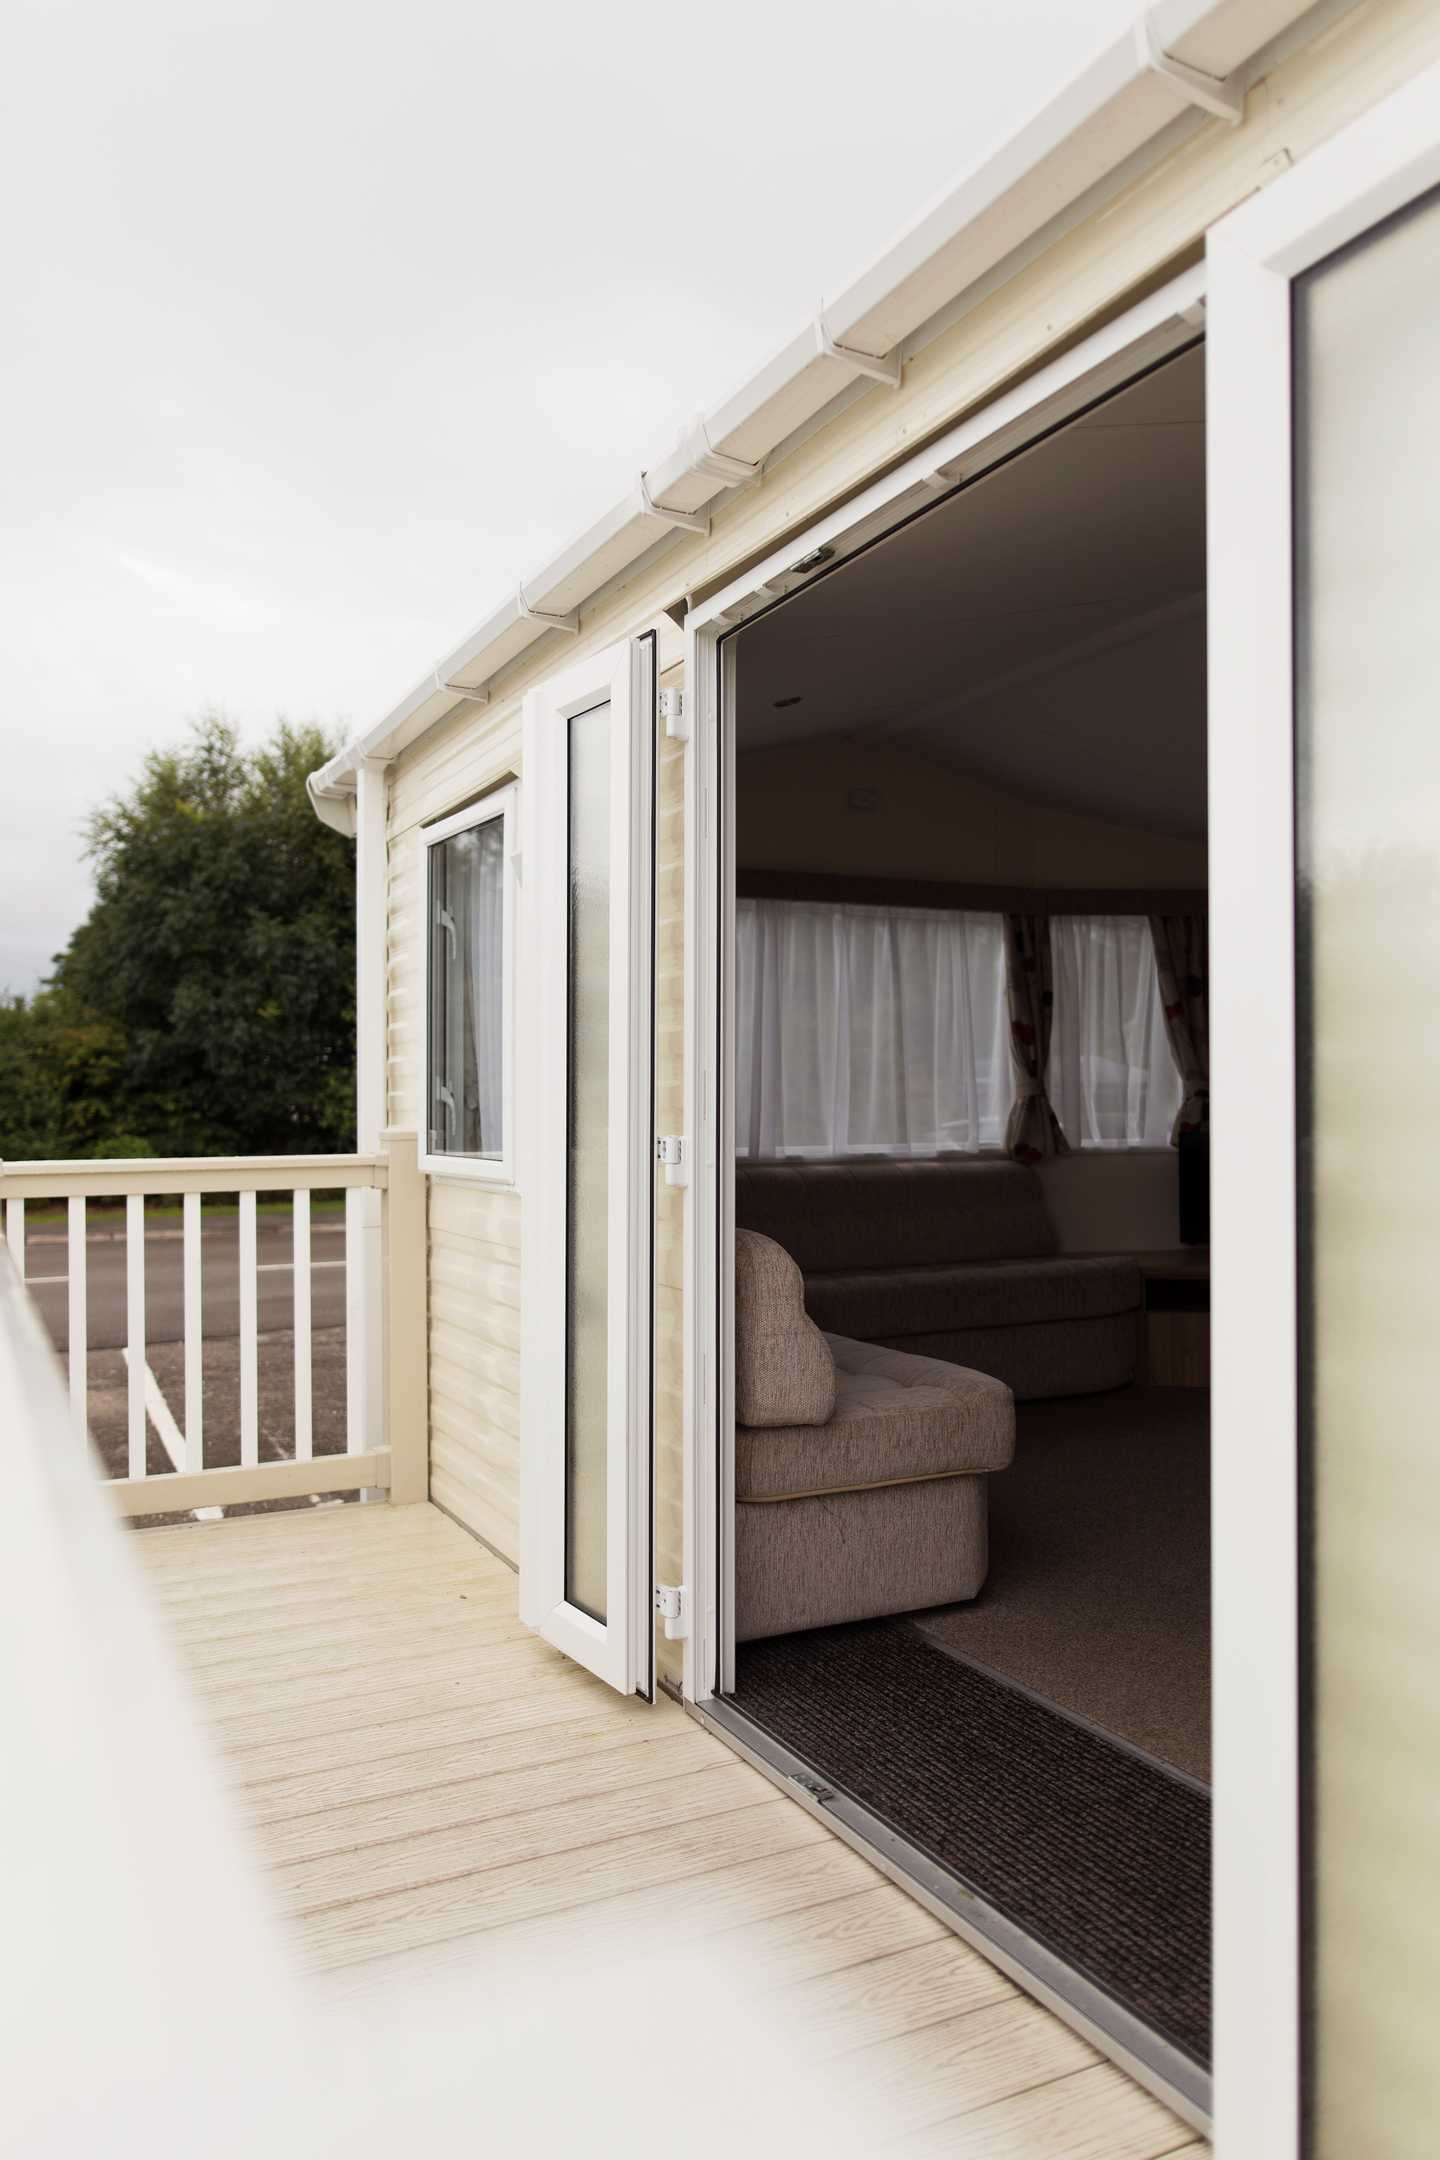 An Adapted caravan doorway to the wheelchair access ramp